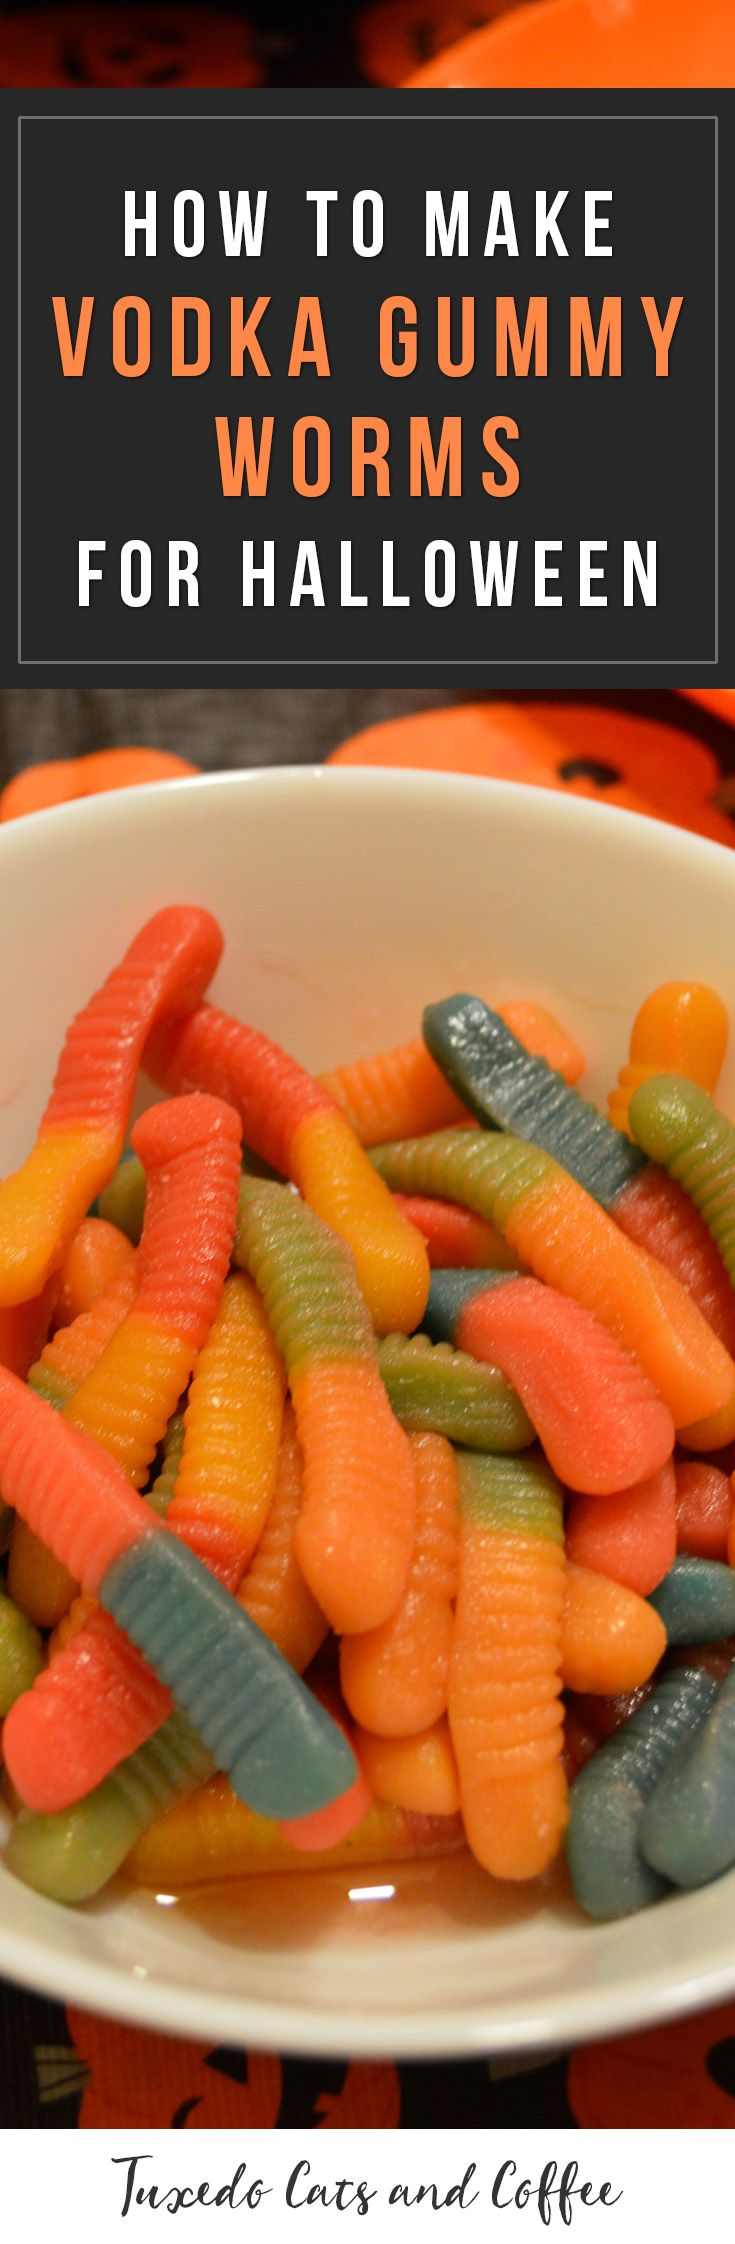 Vodka gummy worms are a delicious adult treat perfect for Halloween parties. Here's how to make vodka gummy worms for Halloween.